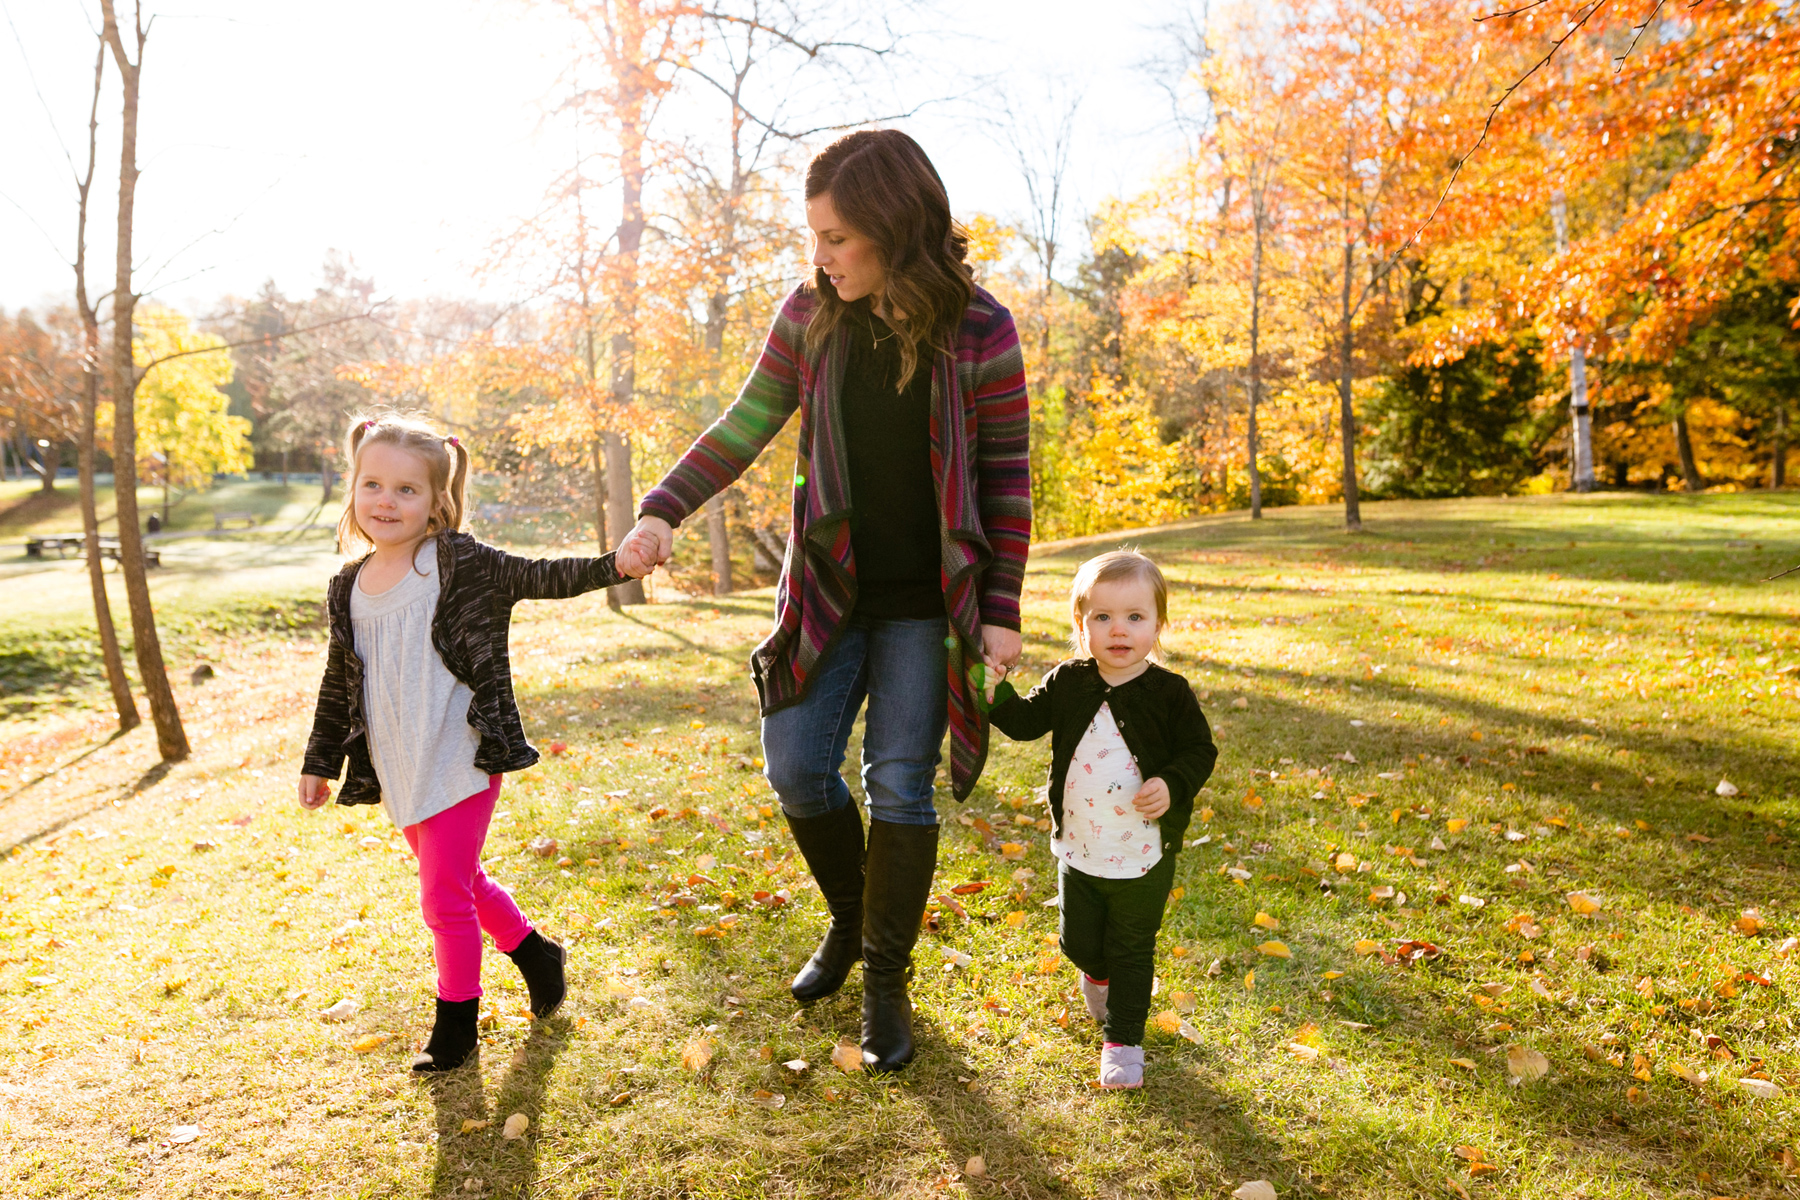 009-fredericton-fall-family-portraits-photography-kandisebrown-sf2017